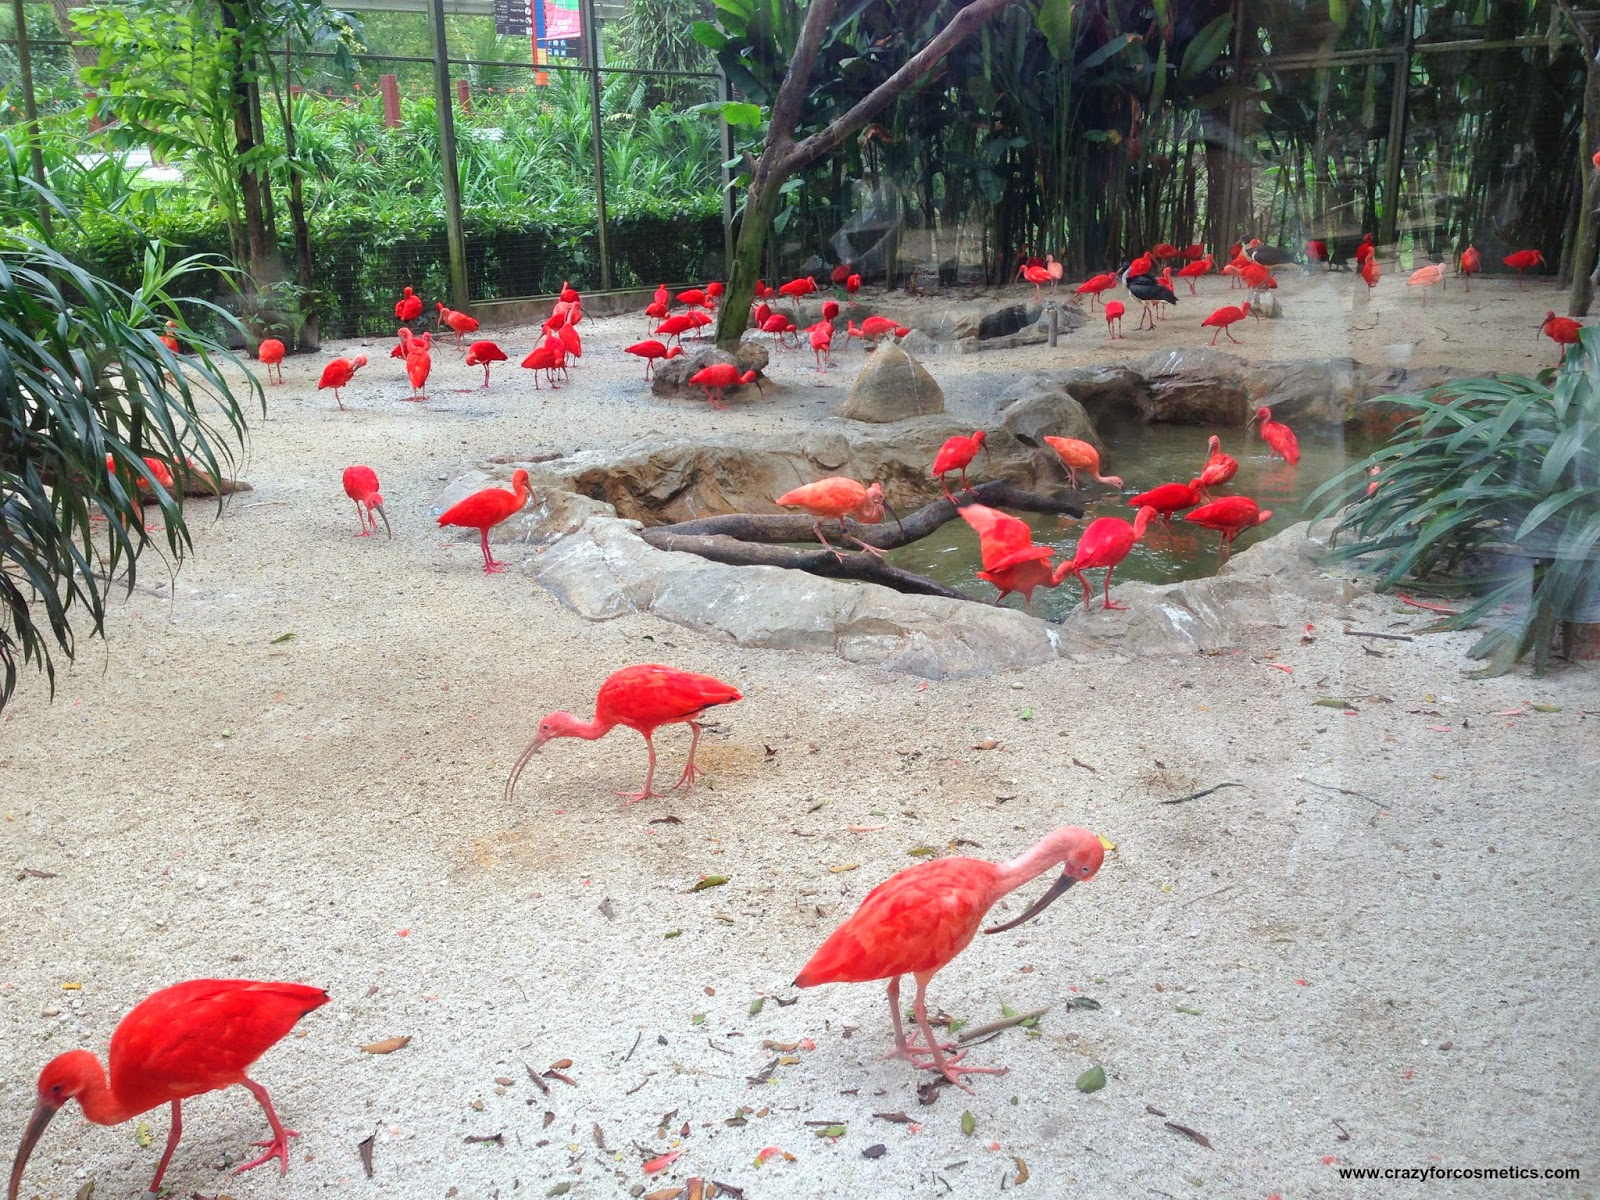 Jurong Bird Park- Jurong Bird Park tickets- jurong bird park timings- jurong bird park review- jurong bird park in Singapore- jurong bird park nearest mrt- jurong bird park shows- Travel- Singapore